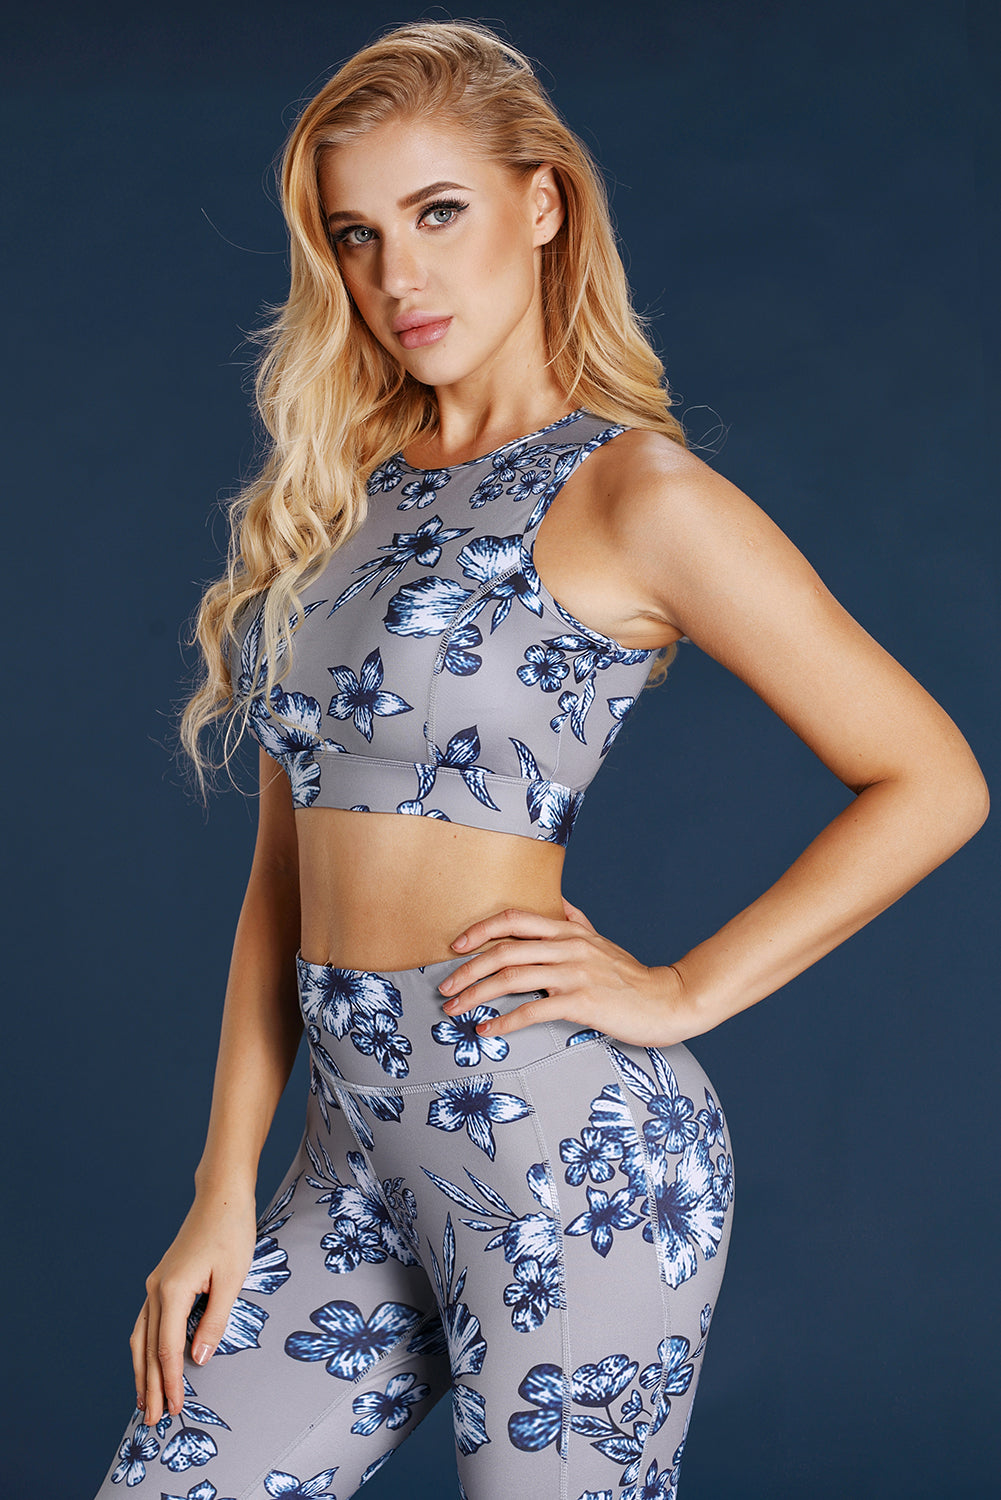 Floral Print High Neck Racerback Sport Bra - Its Trendy Frenzy